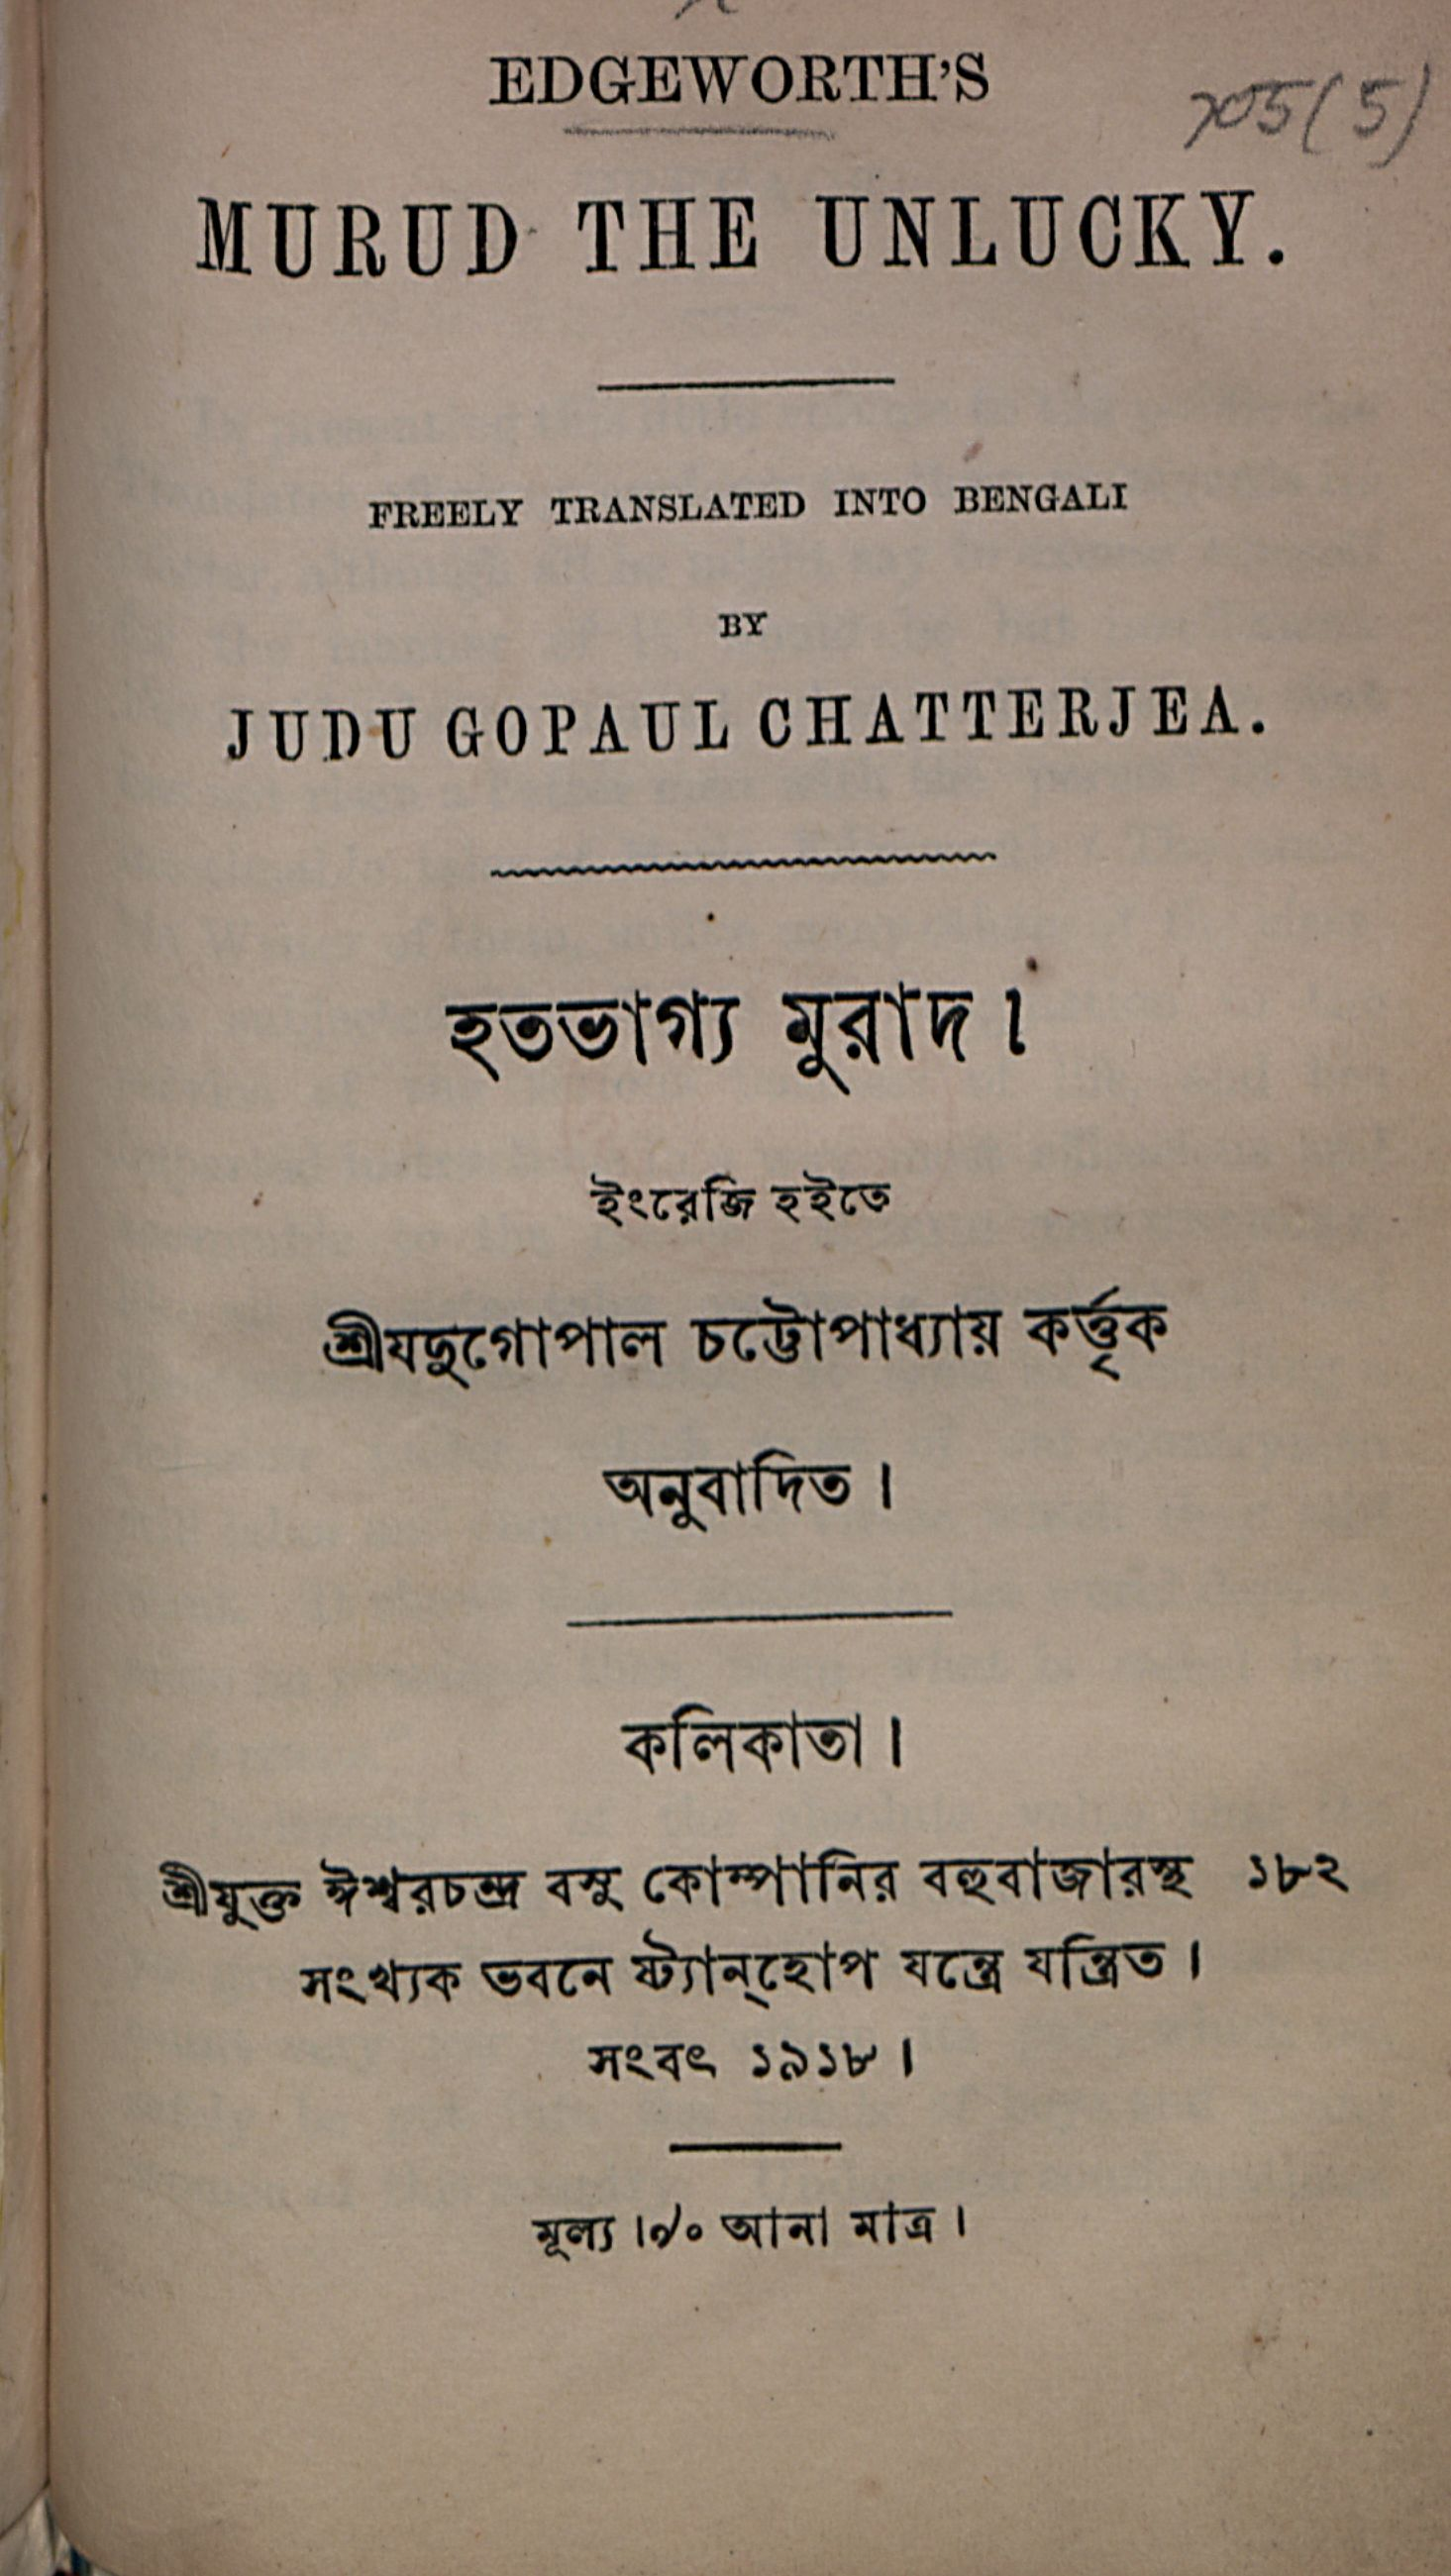 title page to Hatbagya Murad, a translation of Maria Edgeworth's tale Murad the Unlucky.